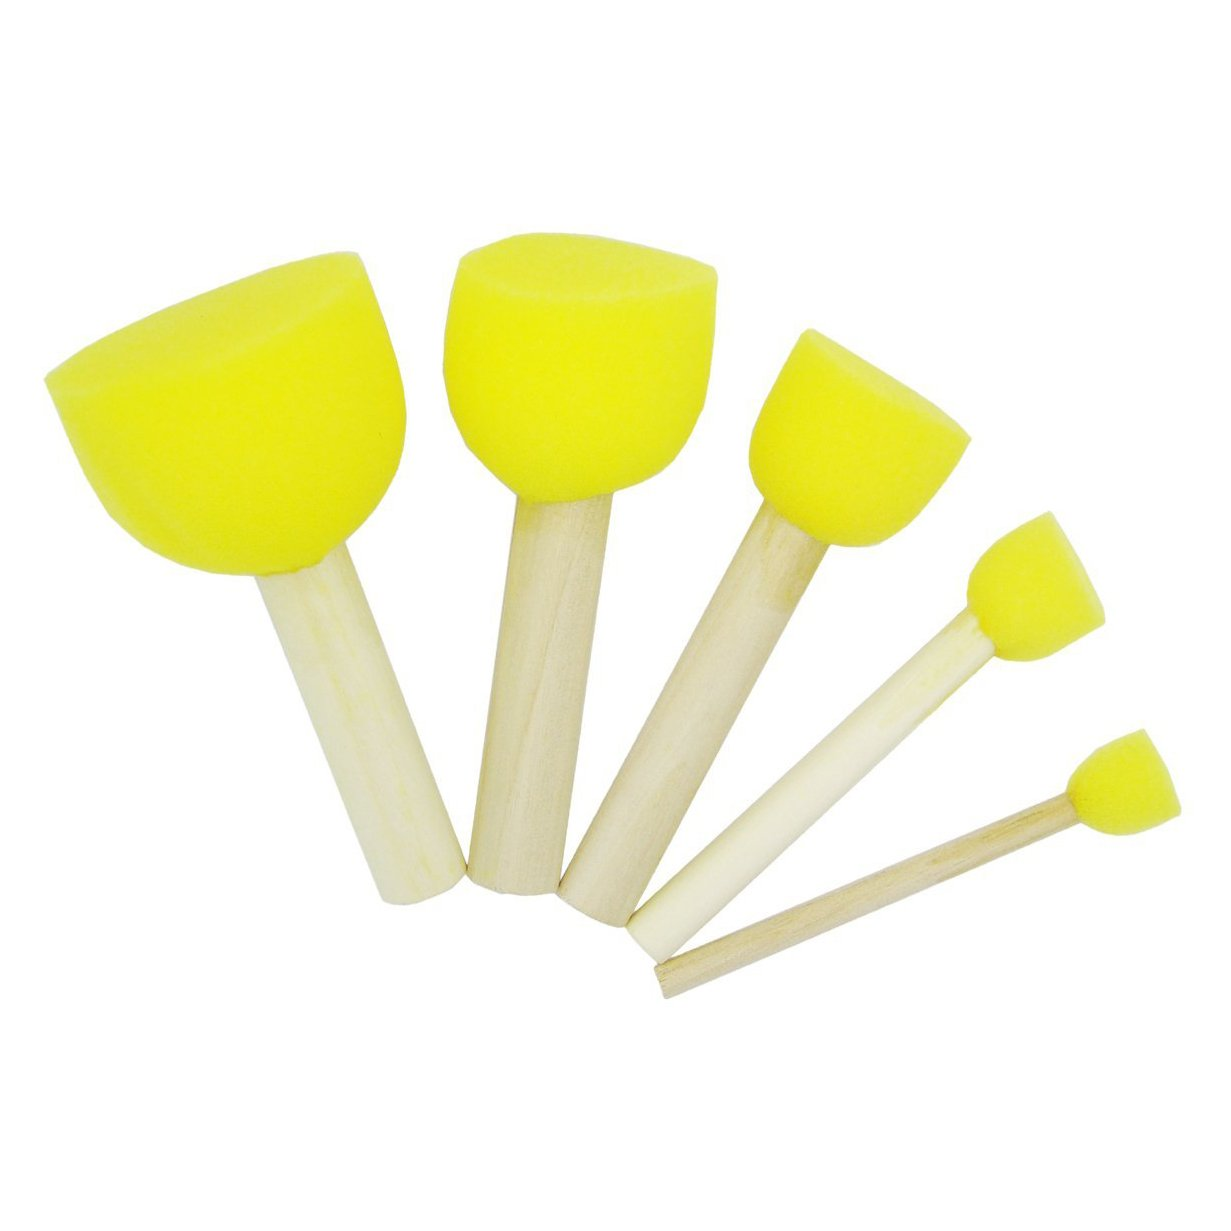 3 Sets Round Stencil Sponge Wooden Handle Foam Brush Furniture Art Crafts Painting Tool Supplies Grosun